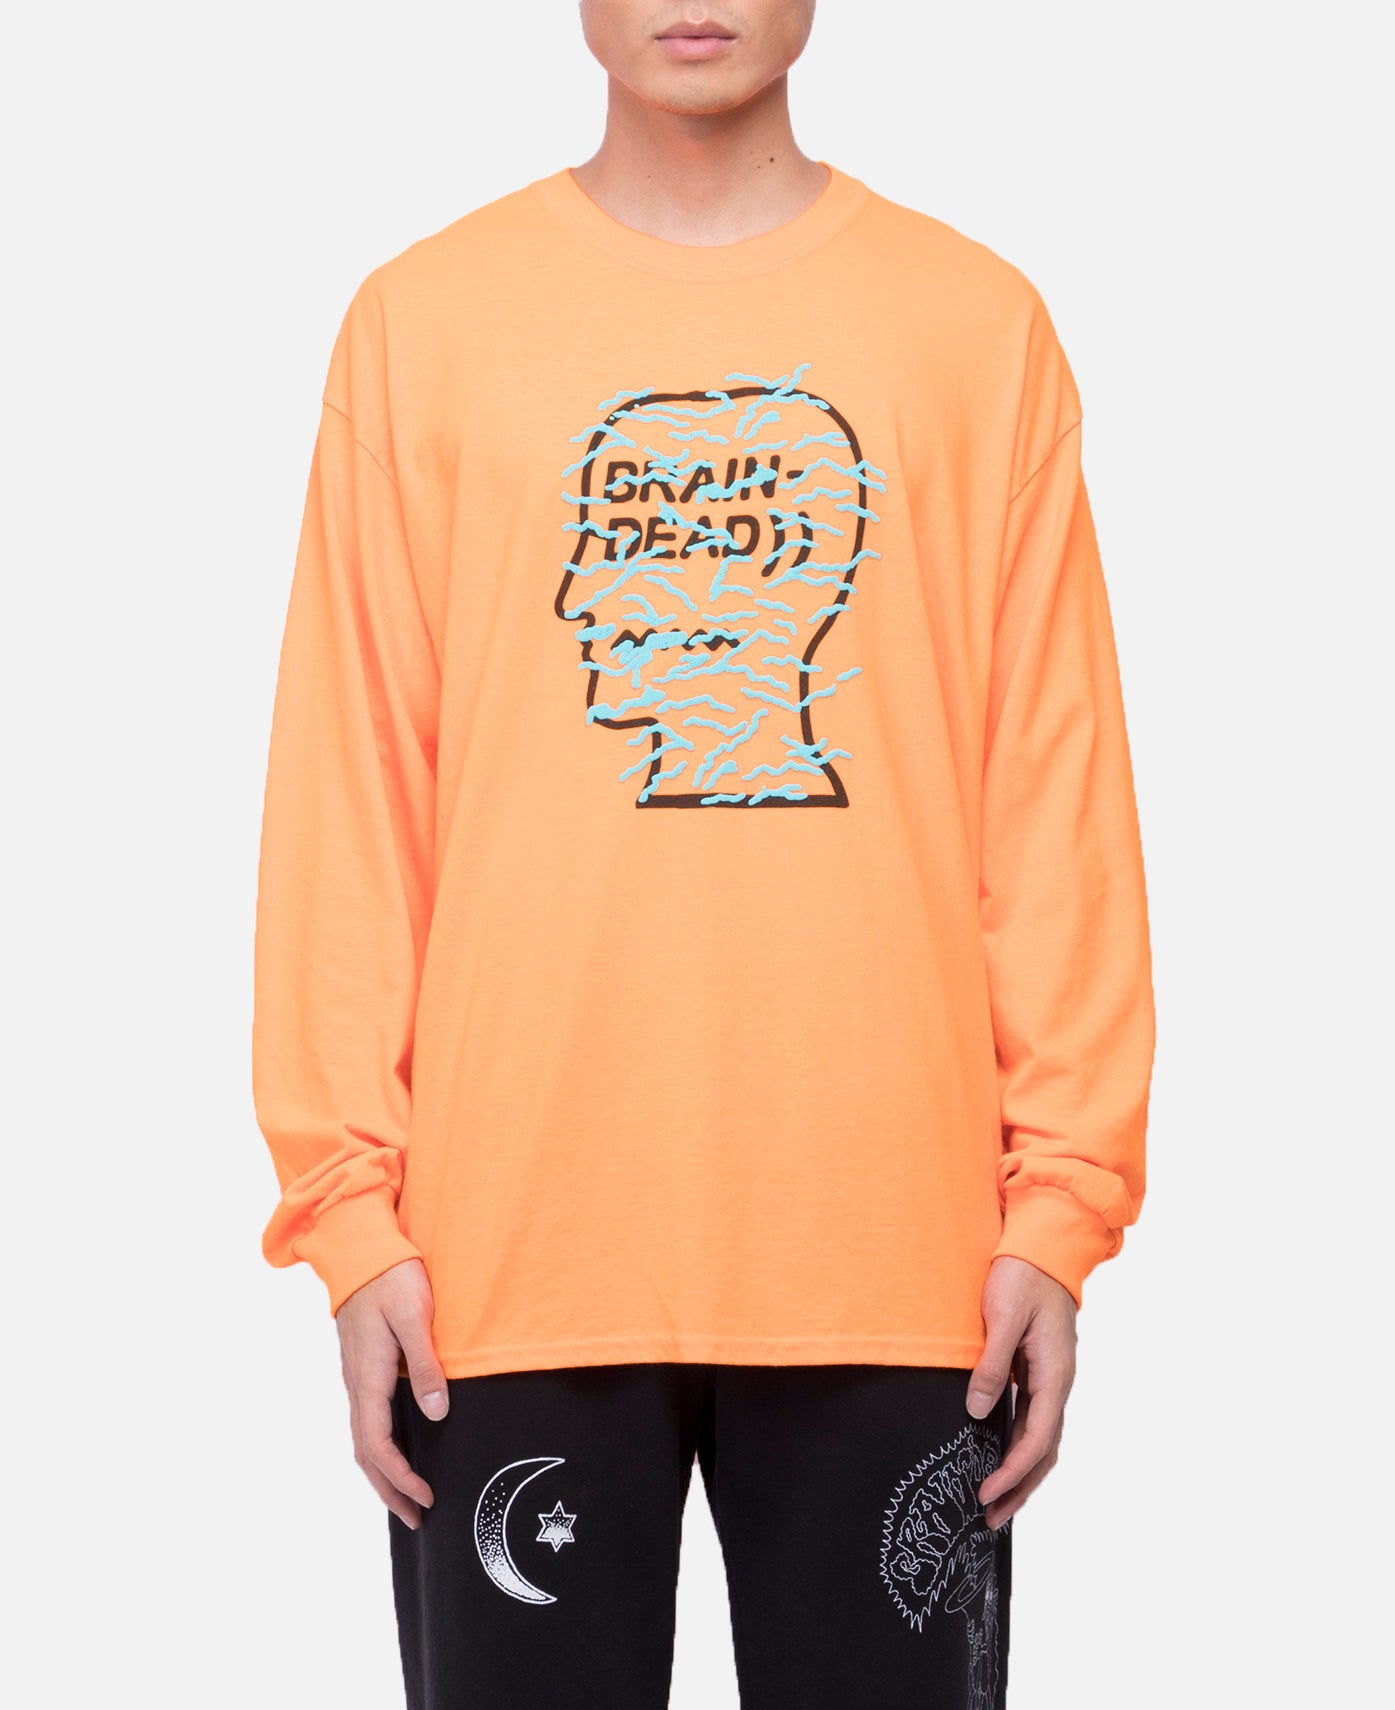 Infected Logo Long Sleeve T-Shirt (Orange)